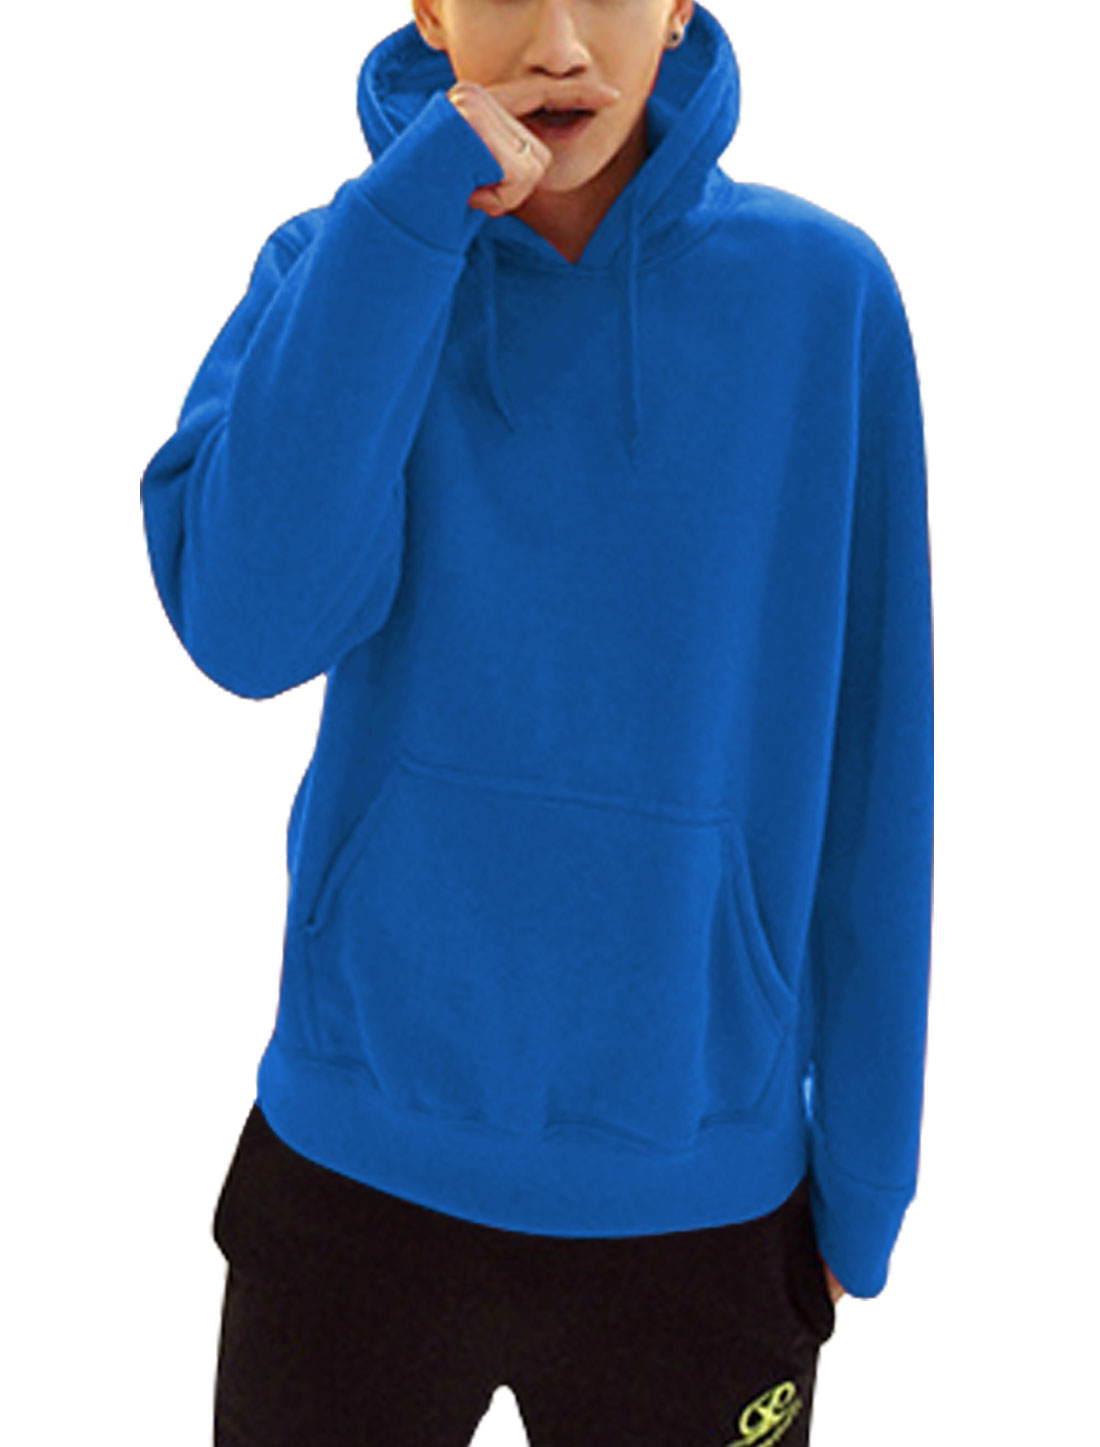 Men Fleece Lined One Kangaroo Pcoket Fashion Thick Hooded Sweatshirt Royal Blue L